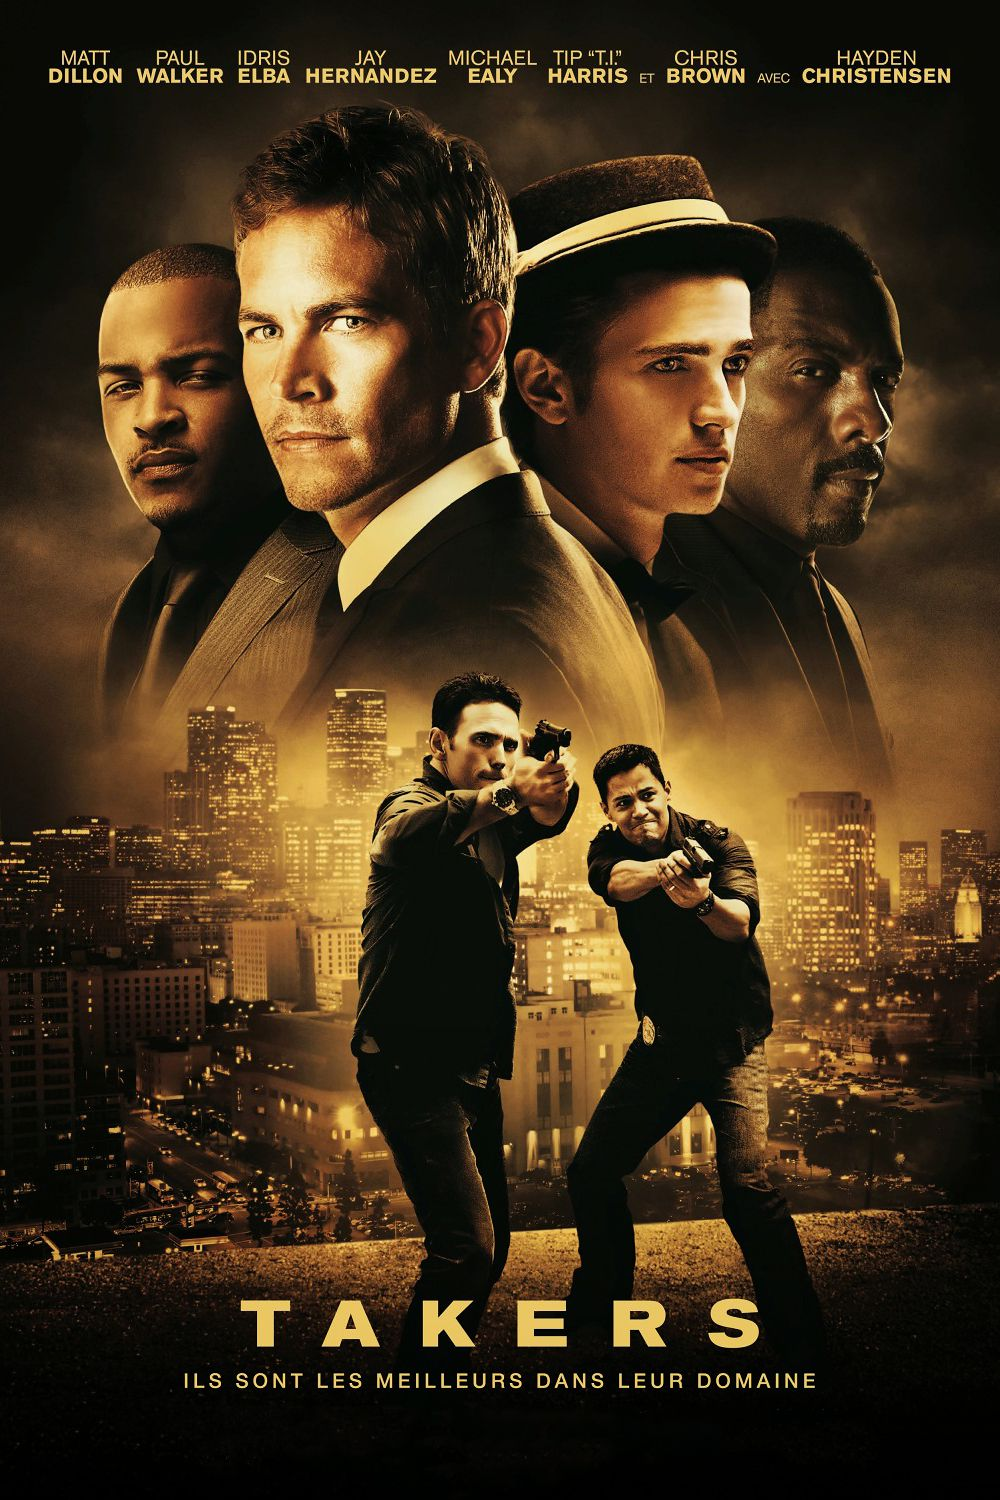 Takers - Film (2010)